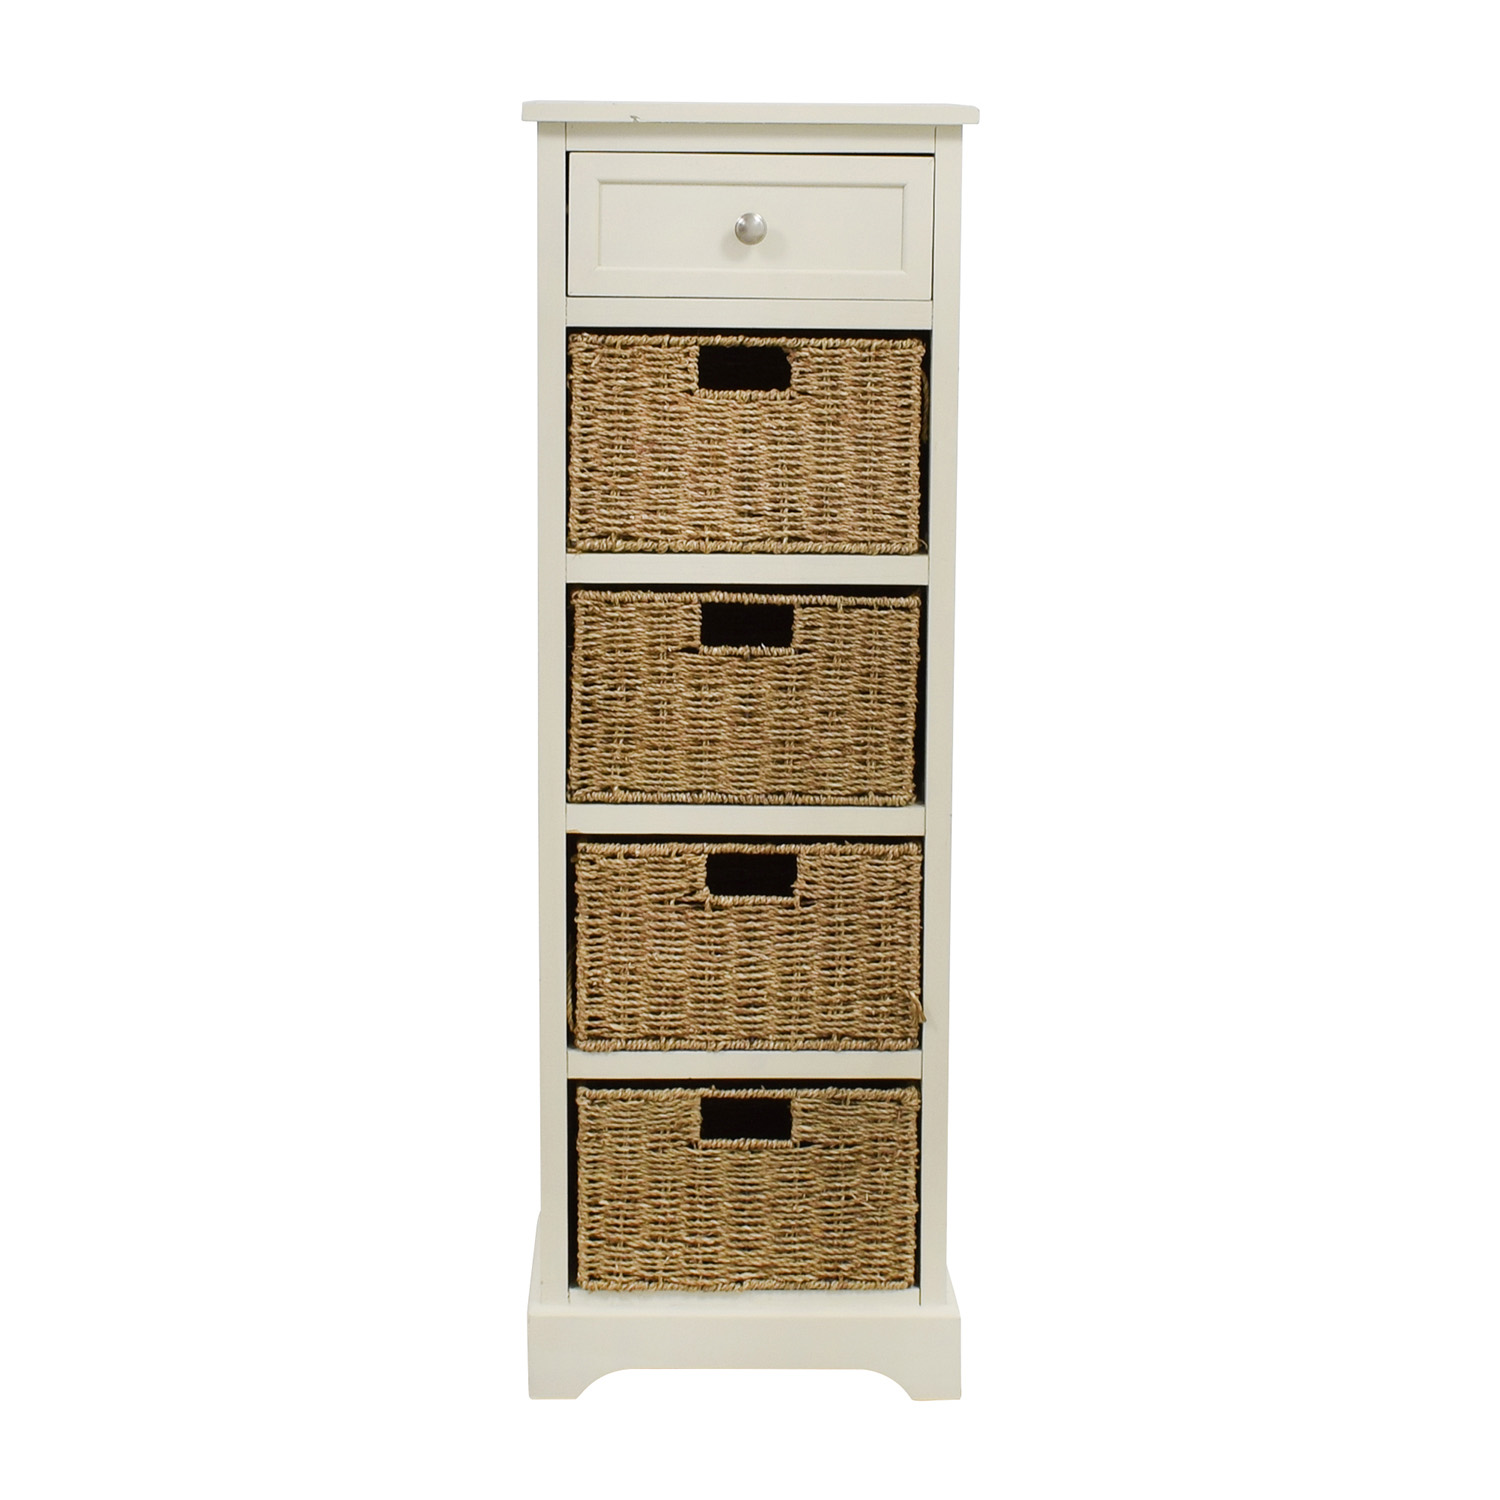 Attrayant Tall White Storage Unit With Drawer And Wicker Baskets Dimensions ...